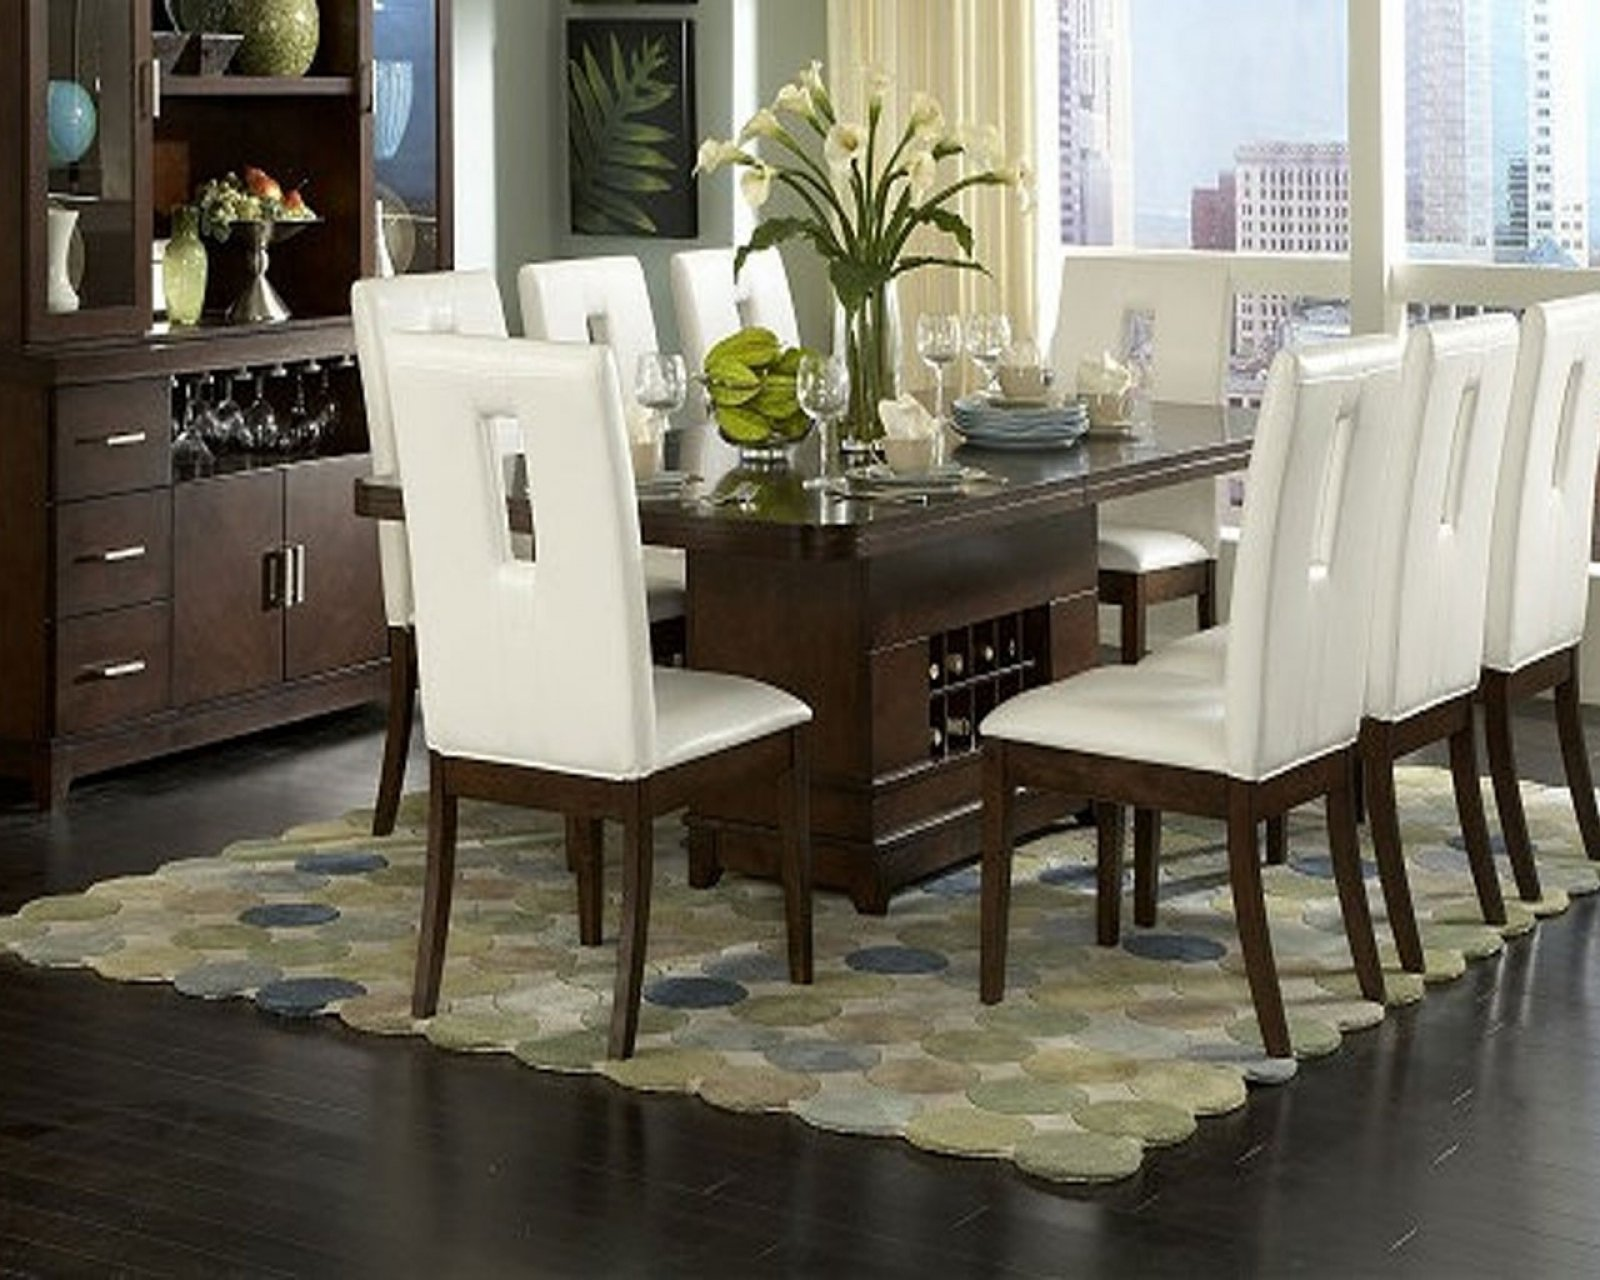 10 Pretty Dining Room Table Centerpieces Ideas dining tables round room table centerpiece ideas wood and decorating 2020